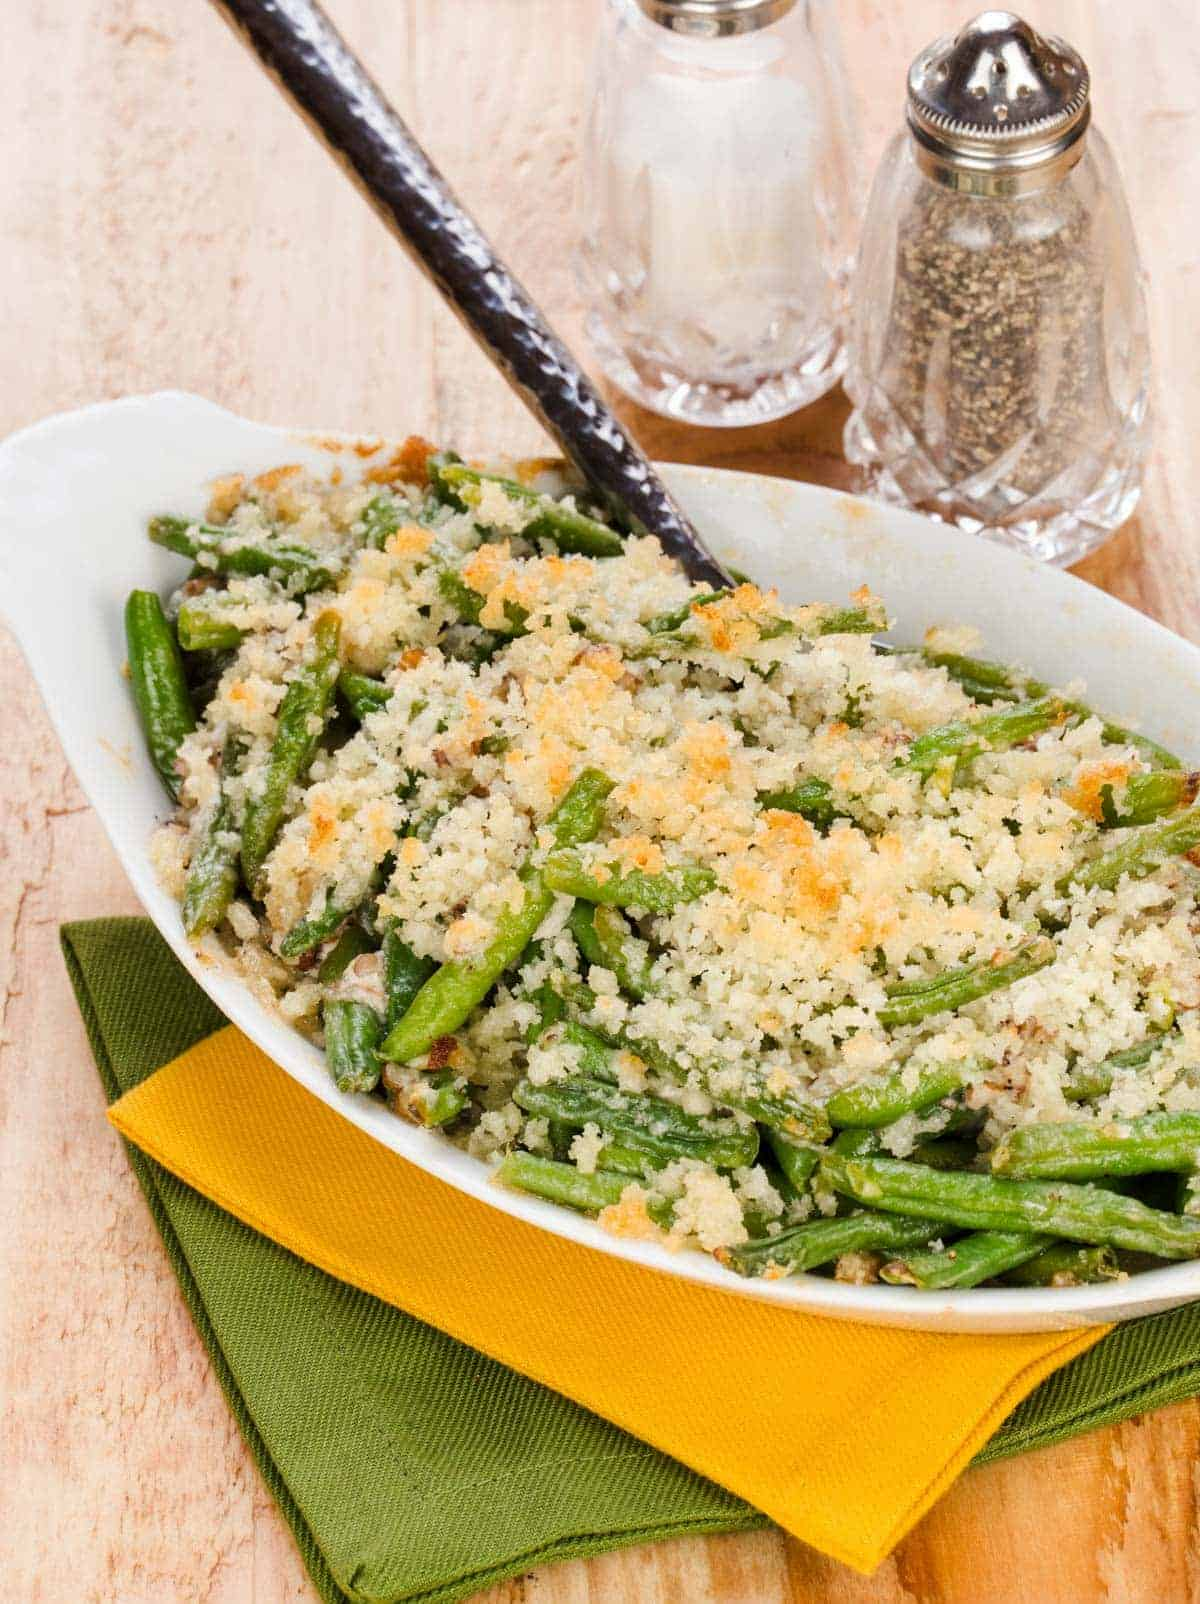 Looking for something new to bring to Thanksgiving? Fresh Green Bean Casserole with Cheese is a new spin on Grandma's classic side dish.